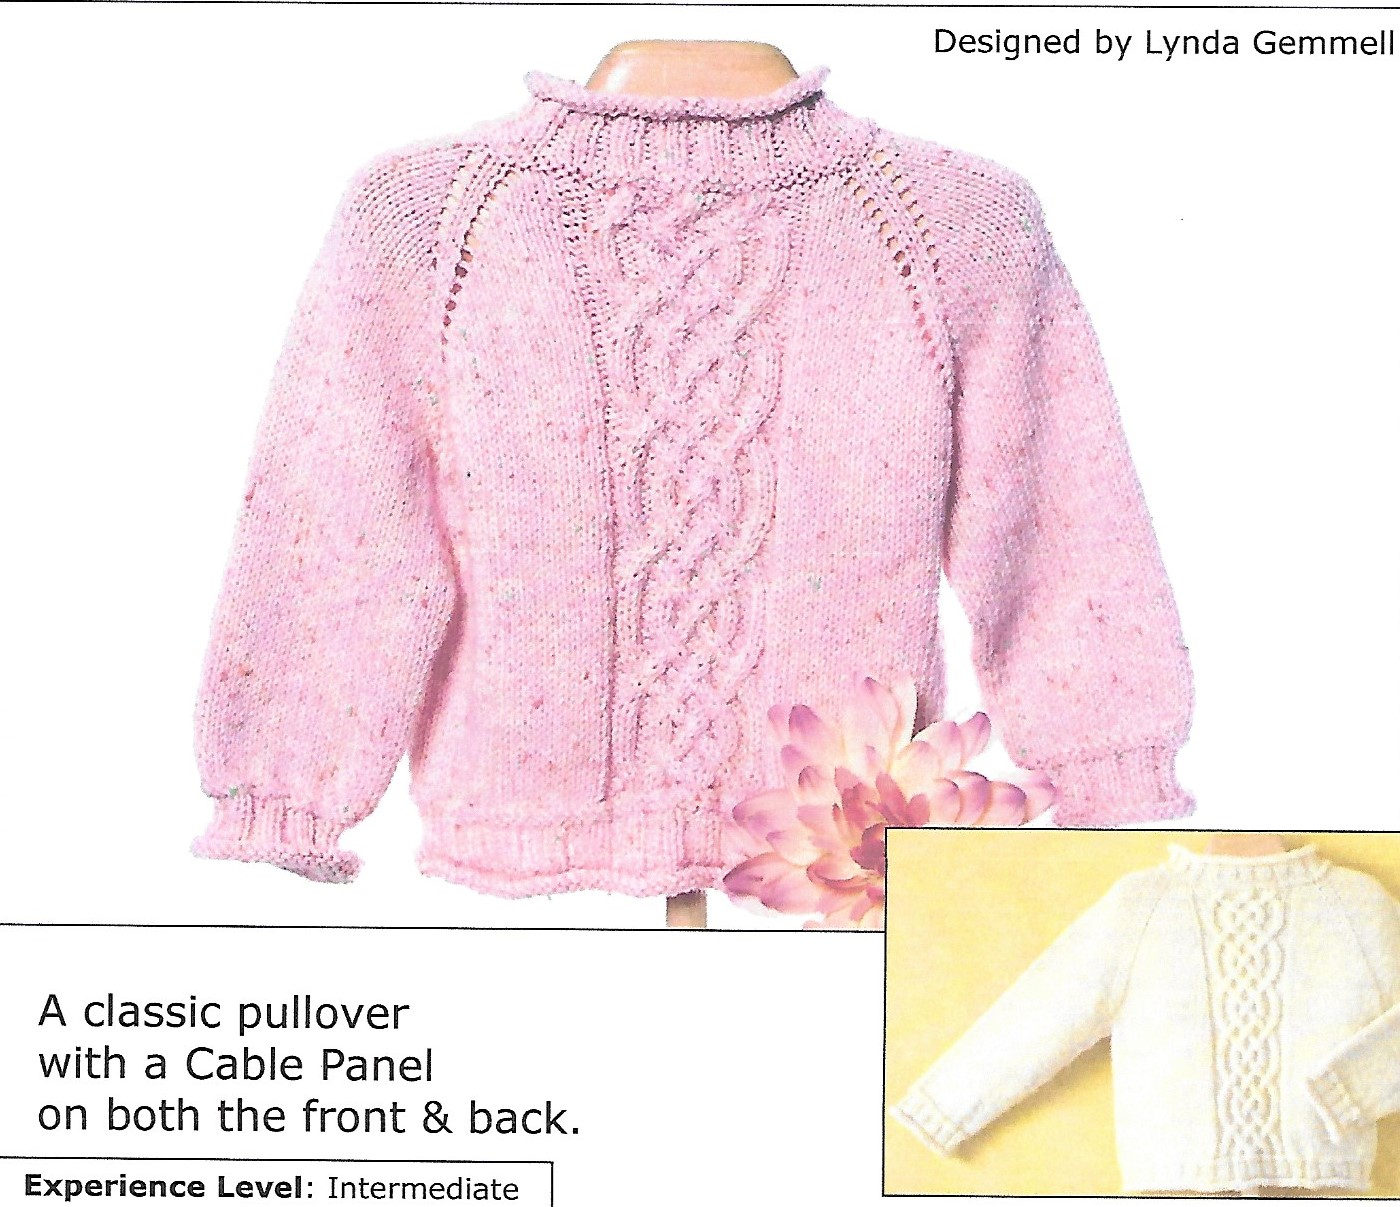 Cabin Fever 618 Top Down Kid's Classic Cable. Uses Double Knitting #3 weight yarn. Sizes 1 year to 6 years.